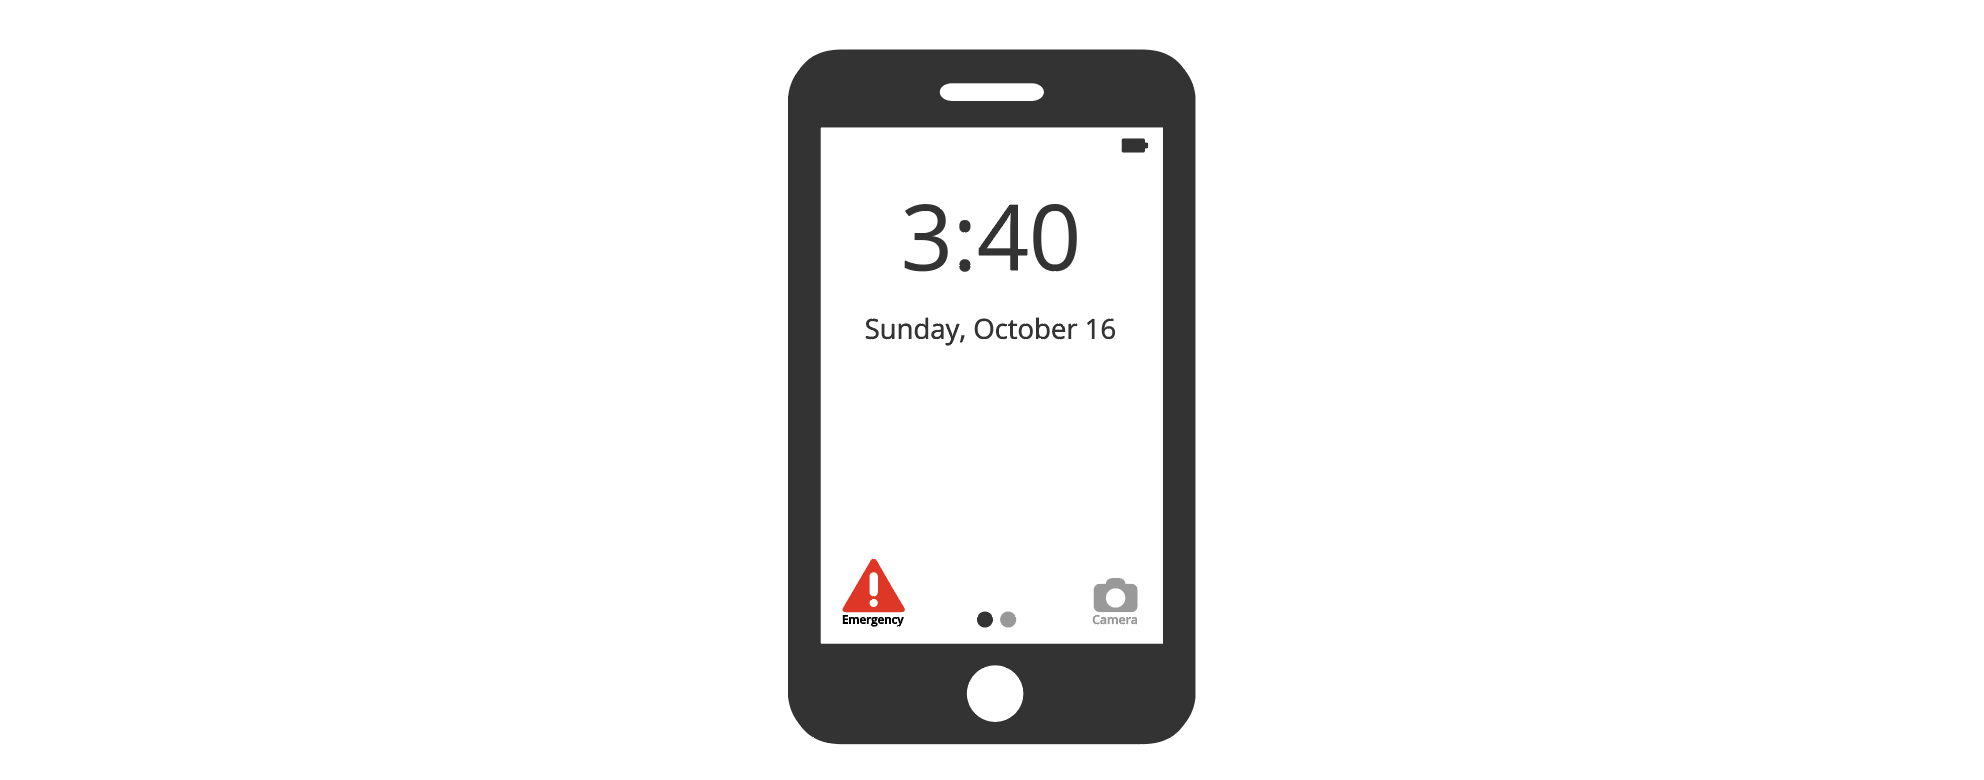 Illustration of an iPhone with an emergency symbol in home screen view